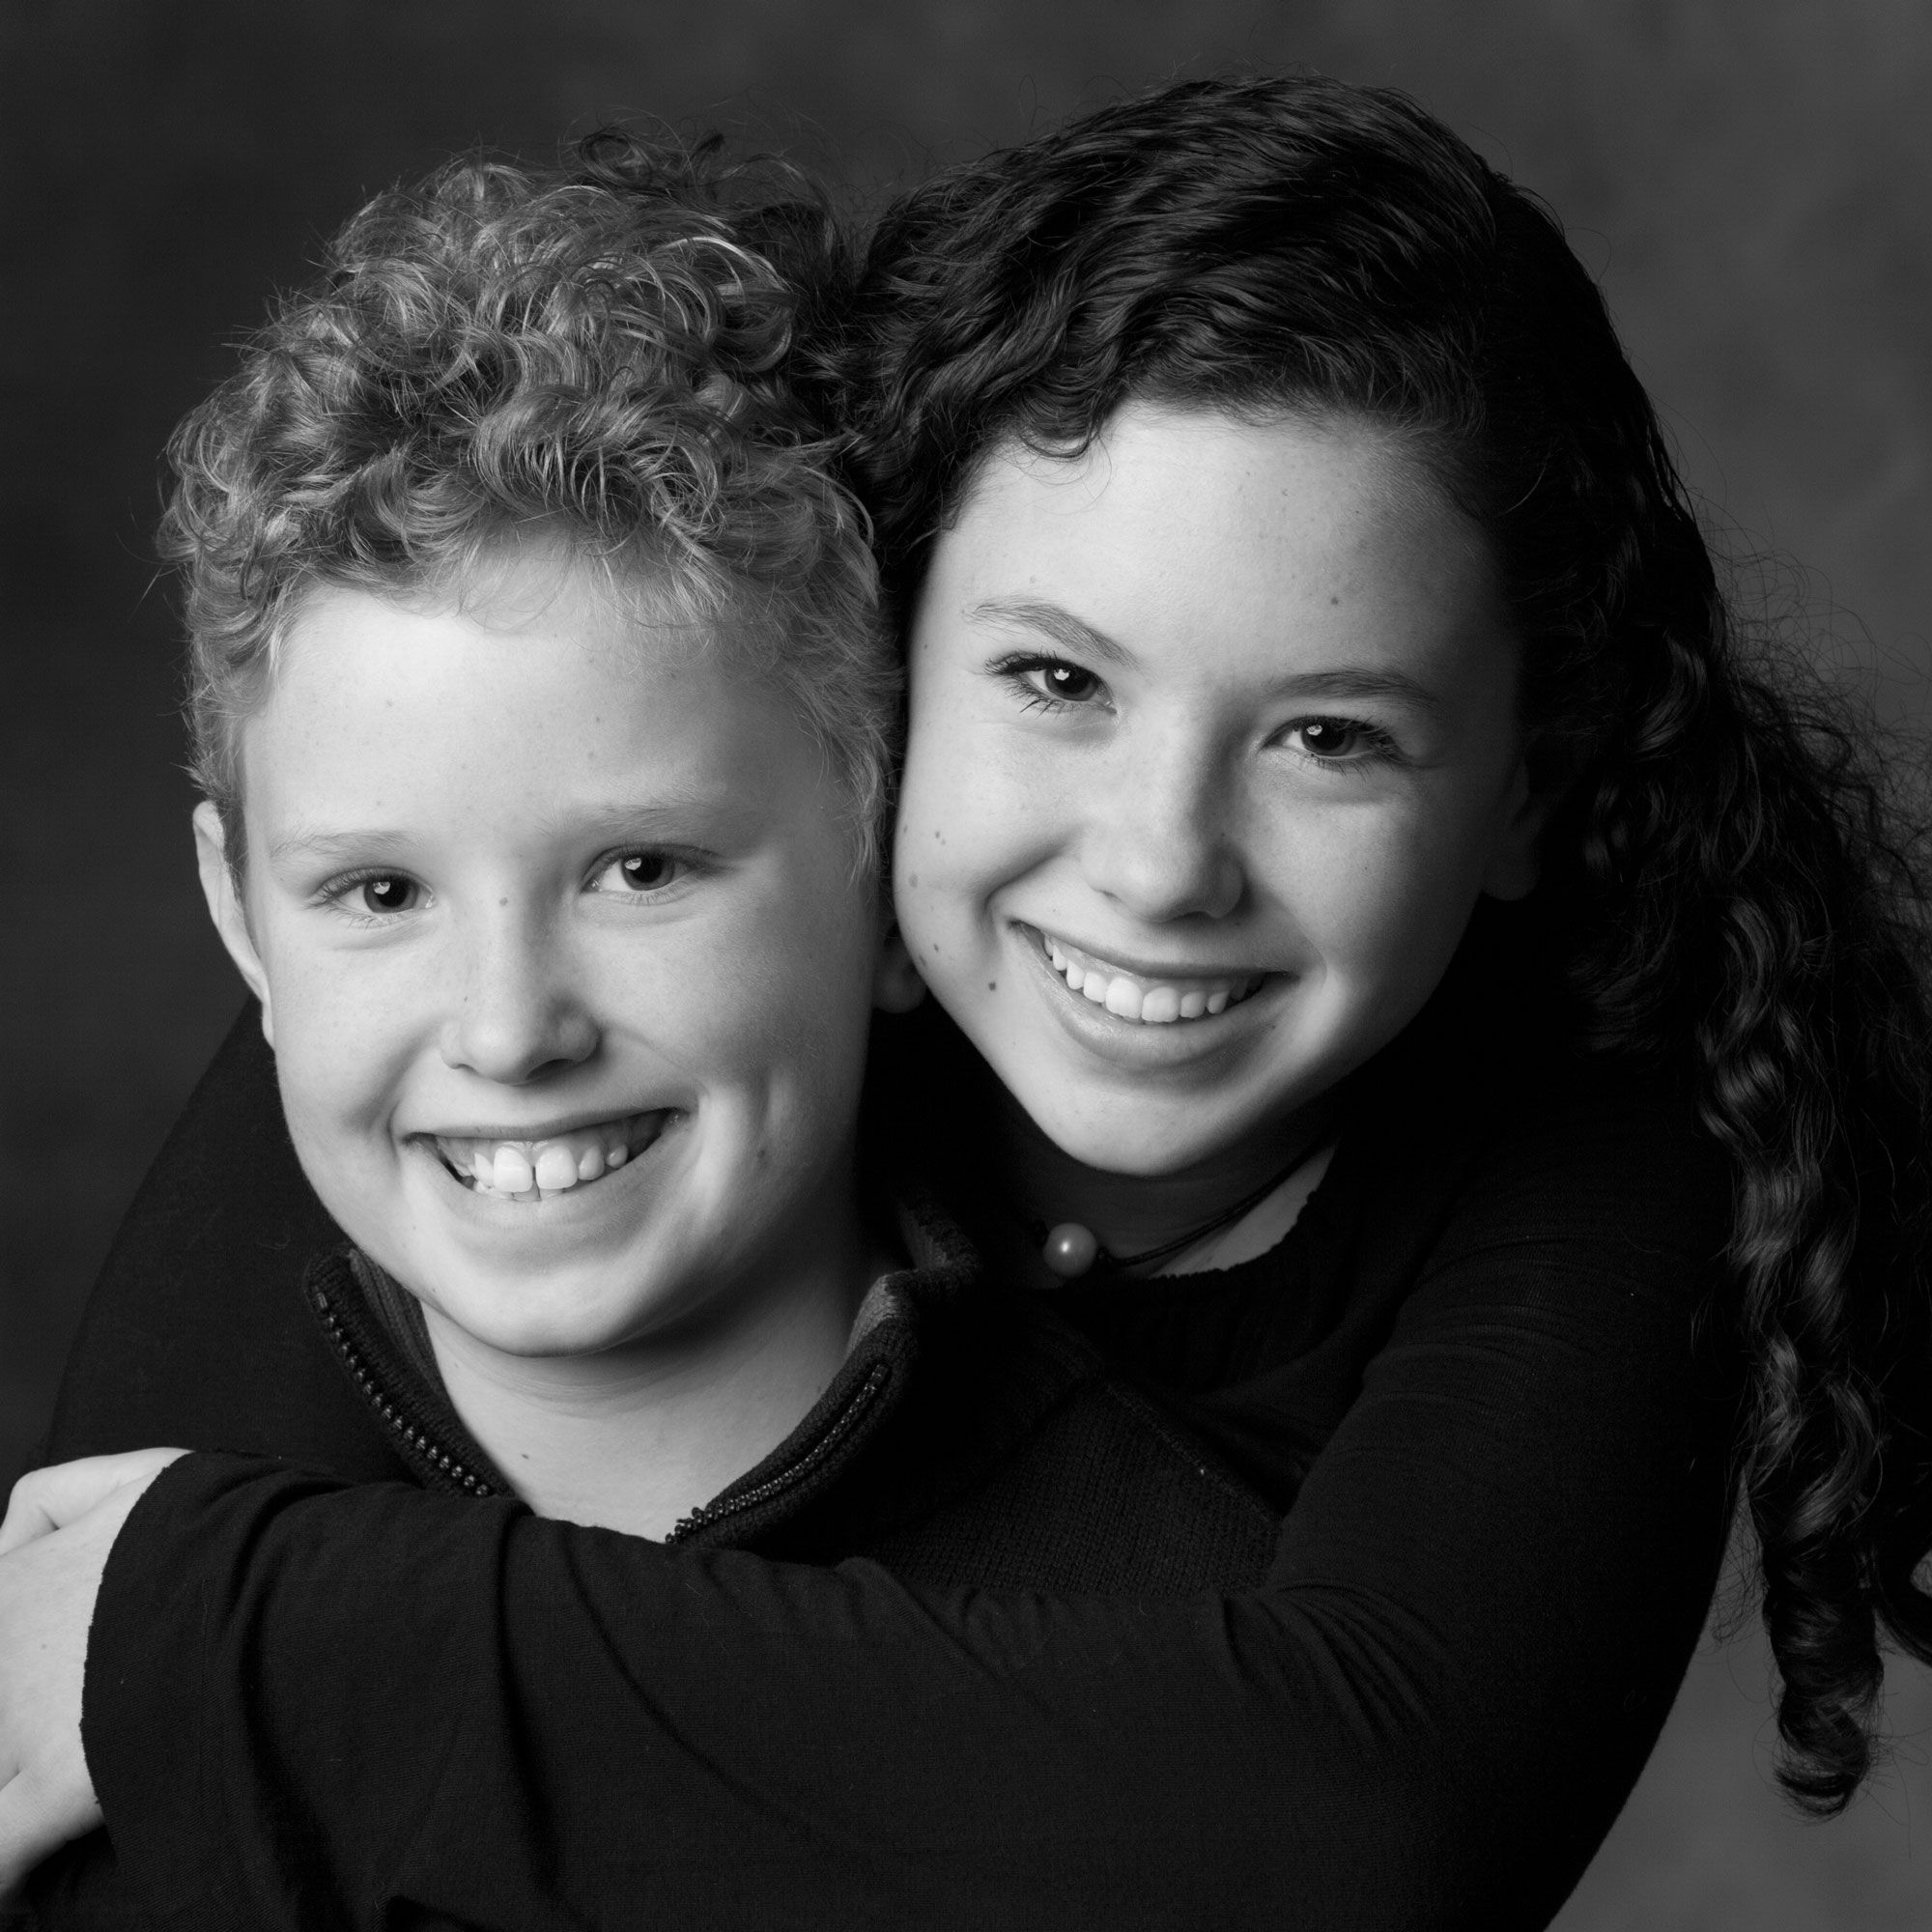 Black and white portrait of brother and sister. Family photograph by Donald Chambers.